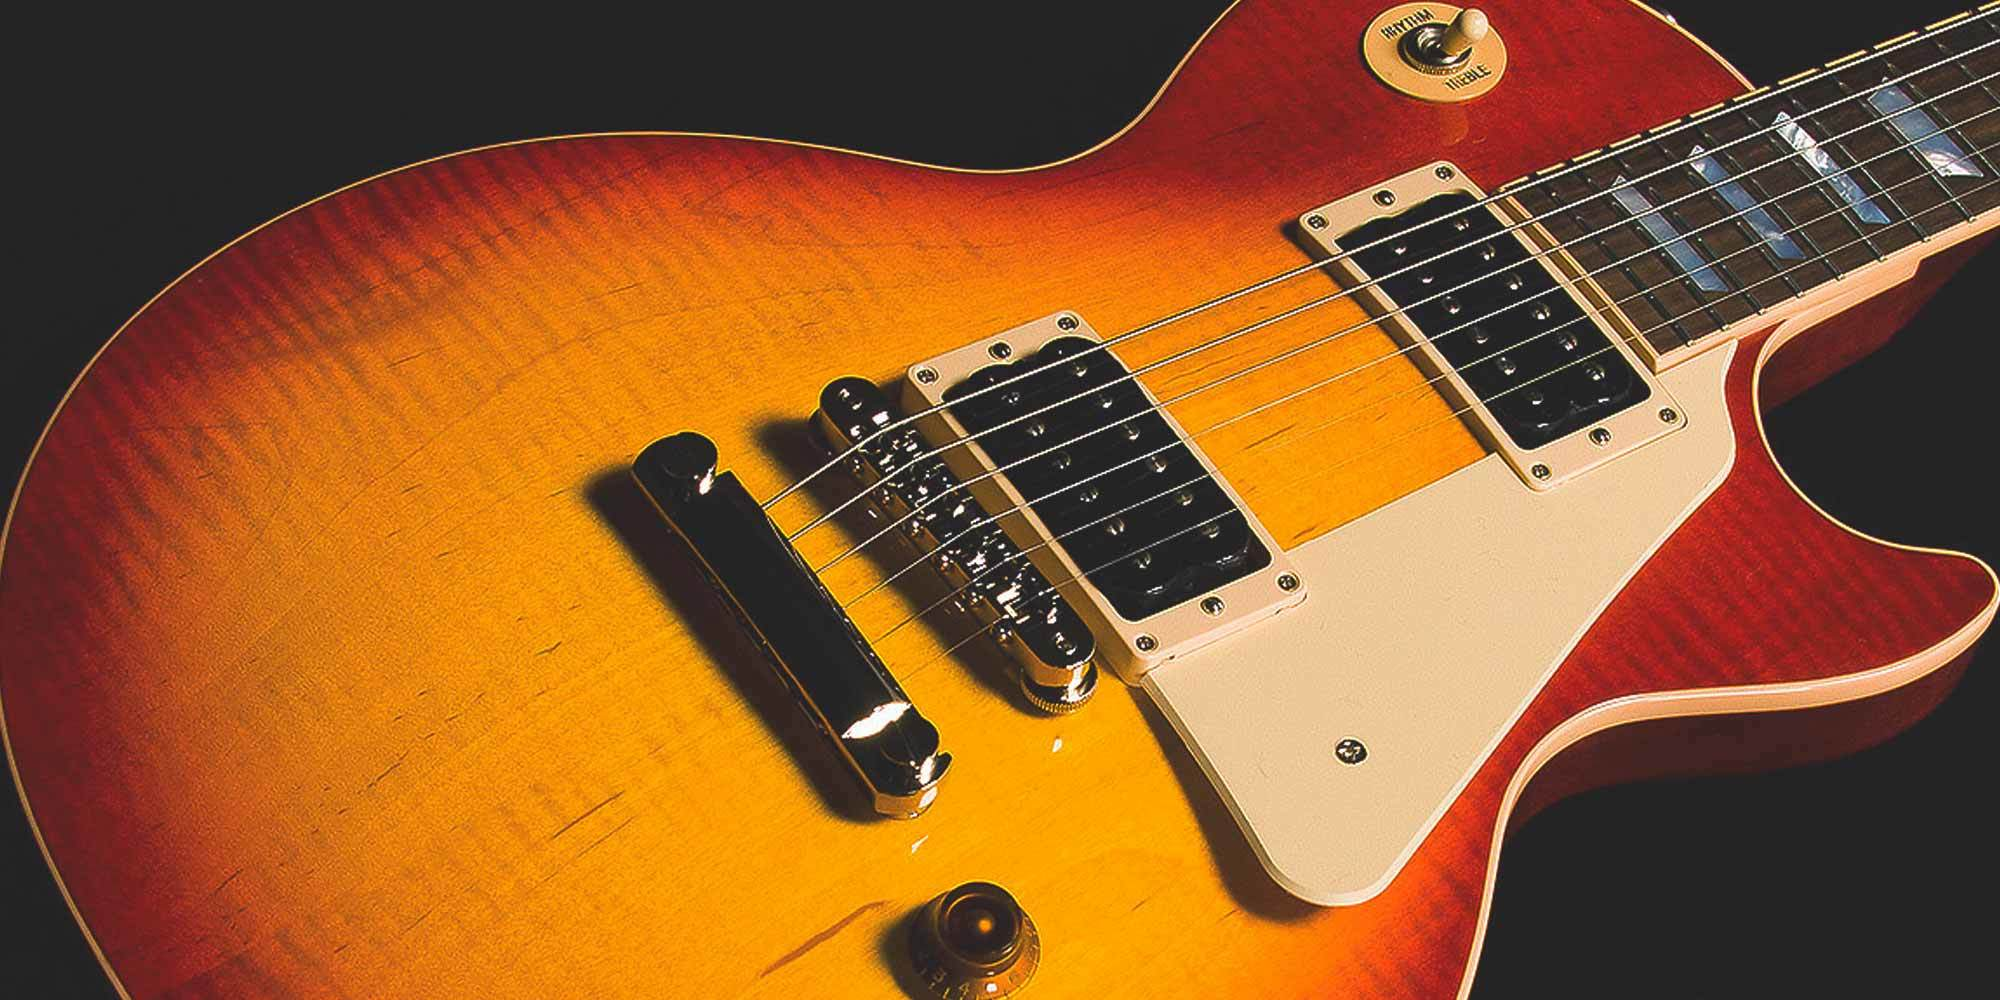 Gibson Guitars For Sale >> Gibson To Increase Prices Update Models For 2015 Reverb News